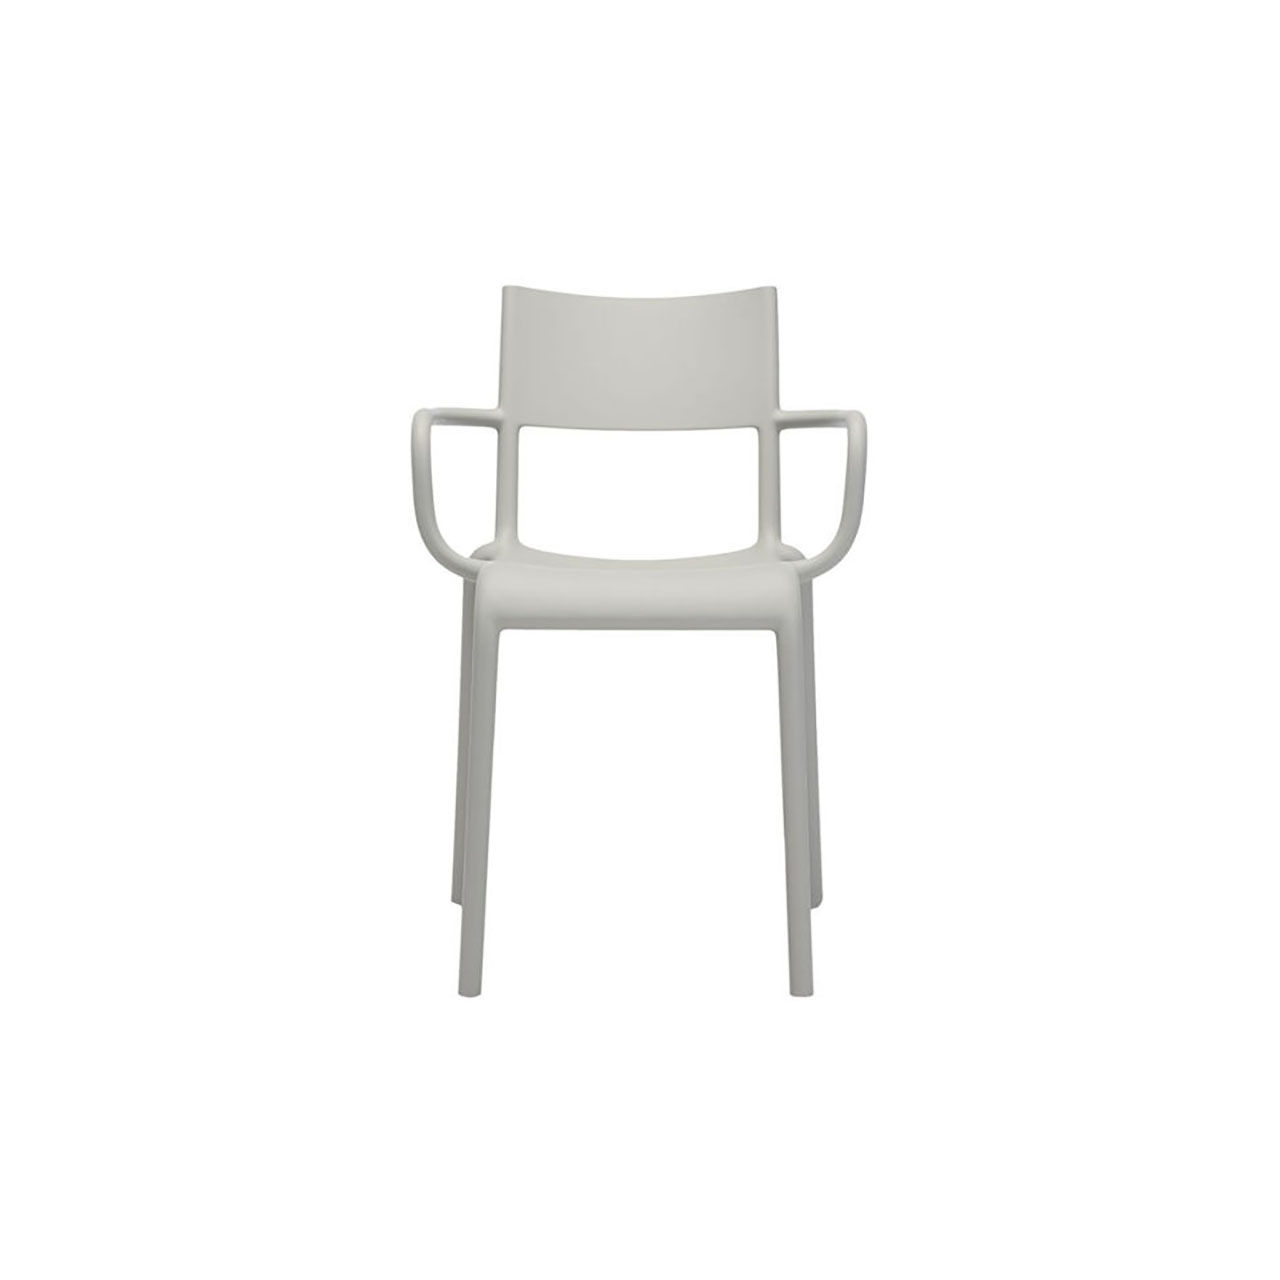 Generic Chair A Set of 2 in Grey by Kartell